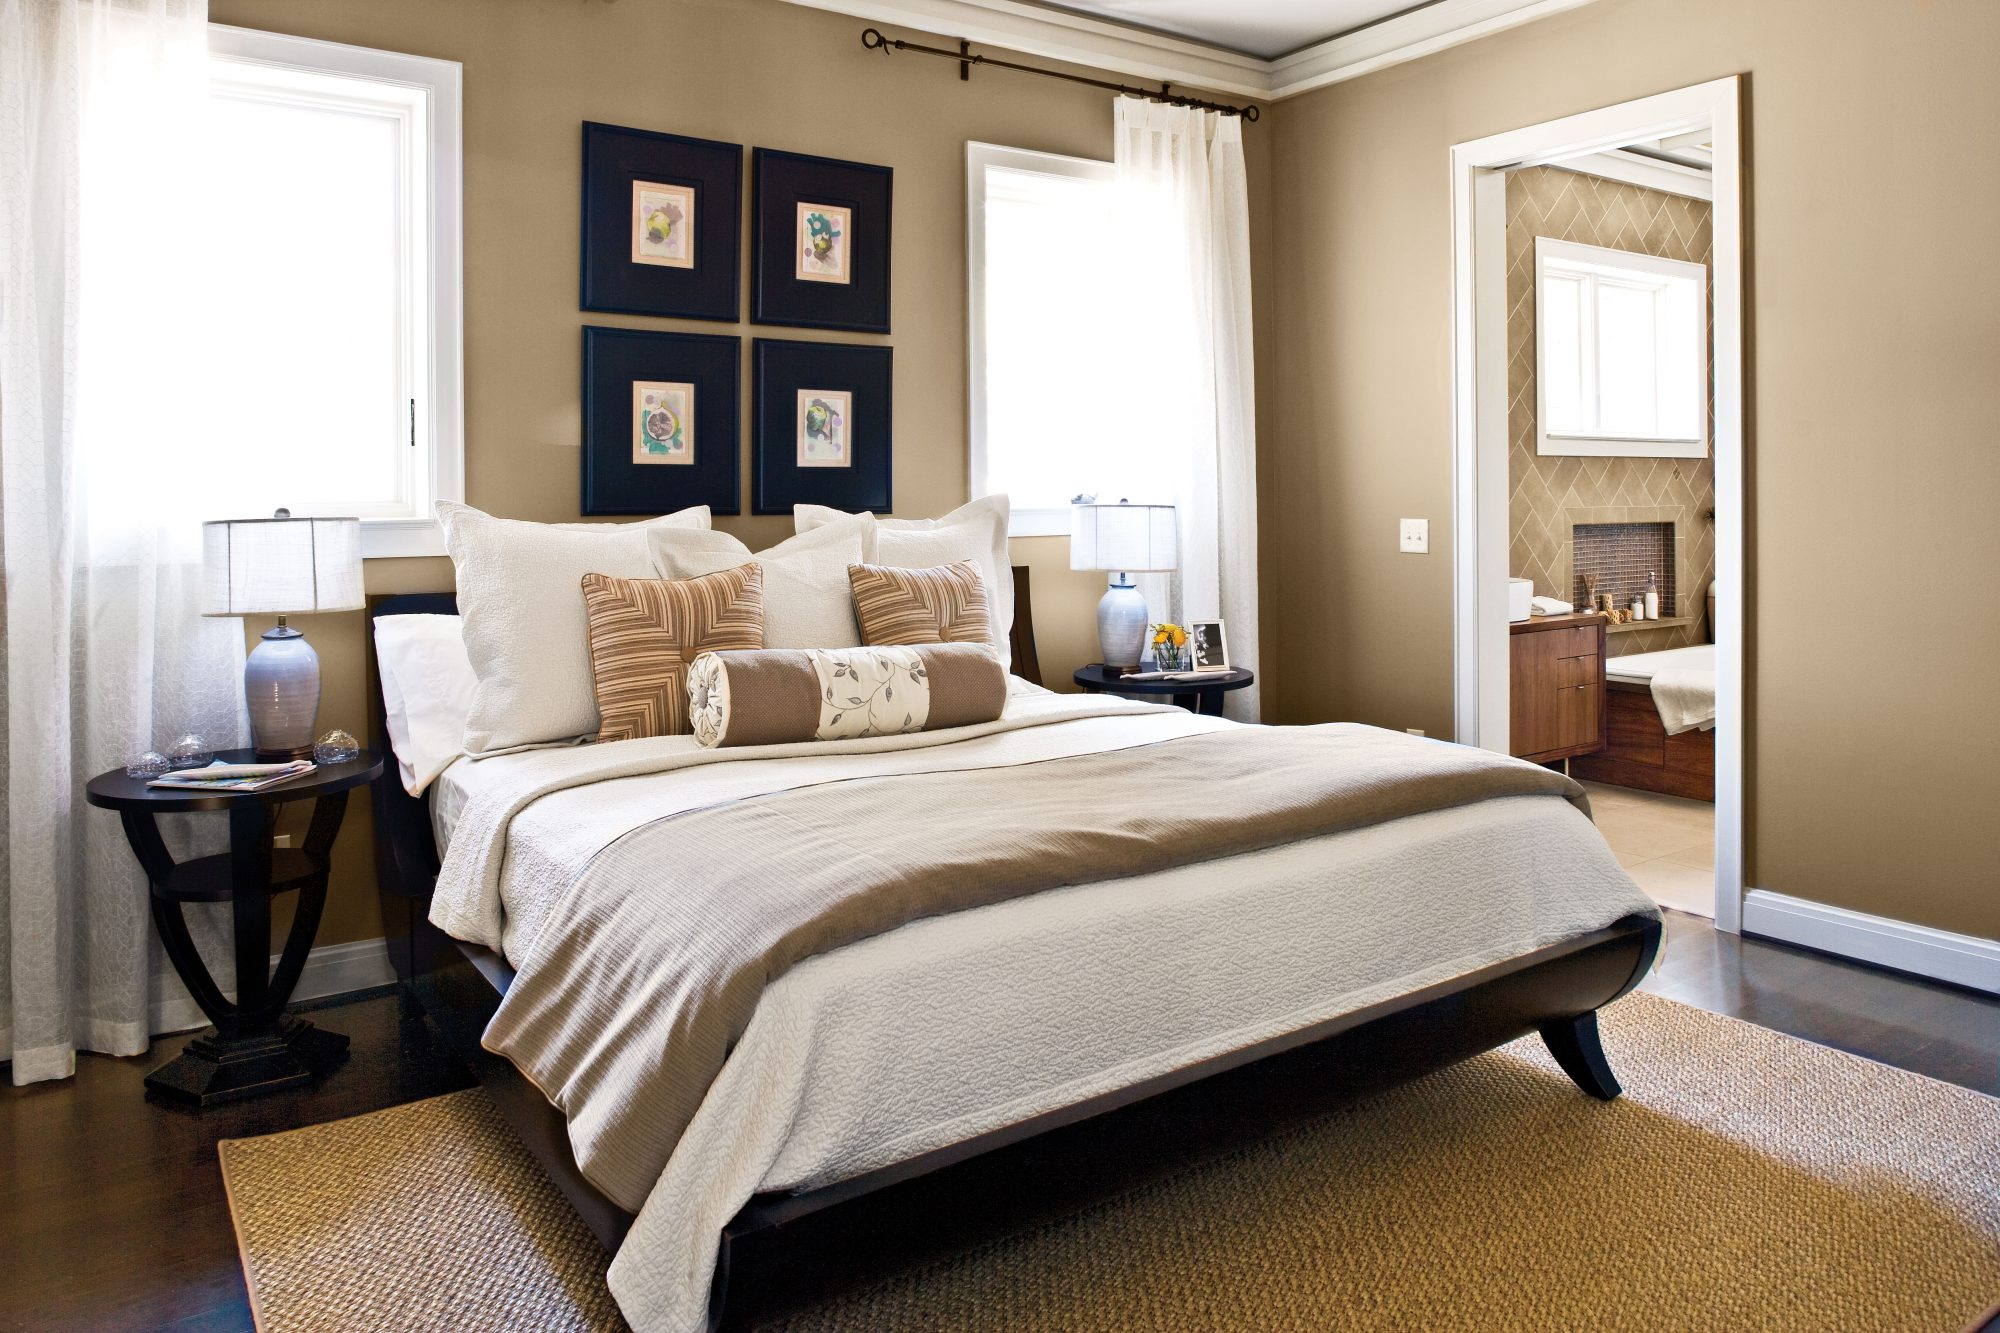 Green Living & Master Bedroom Decorating Ideas - Southern Living